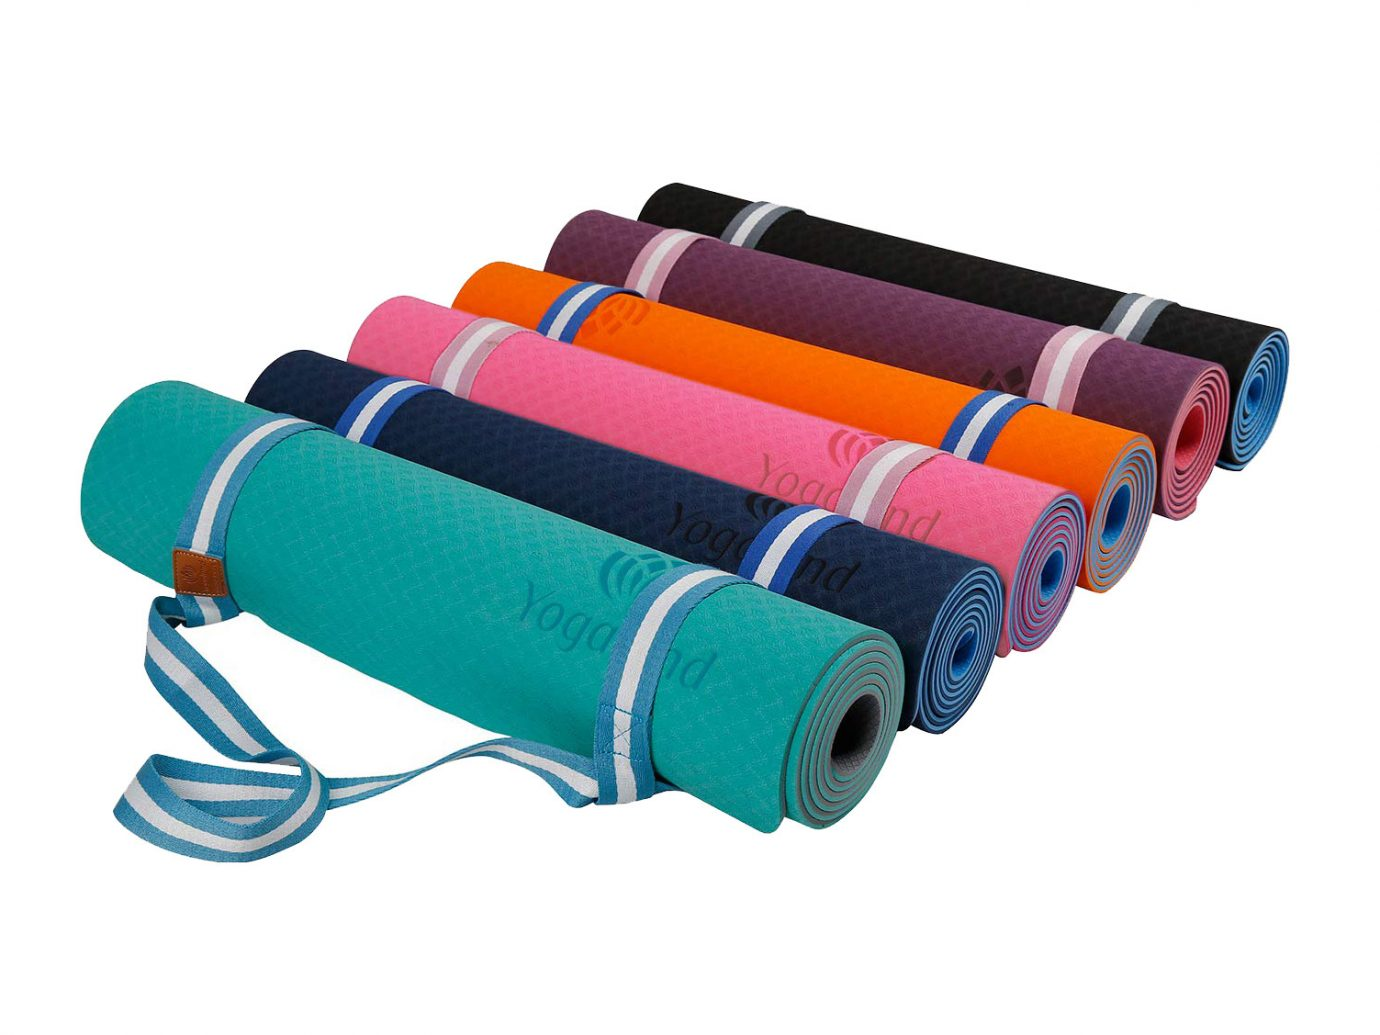 YOGALAND Premium Yoga Mat with Carrier Strap